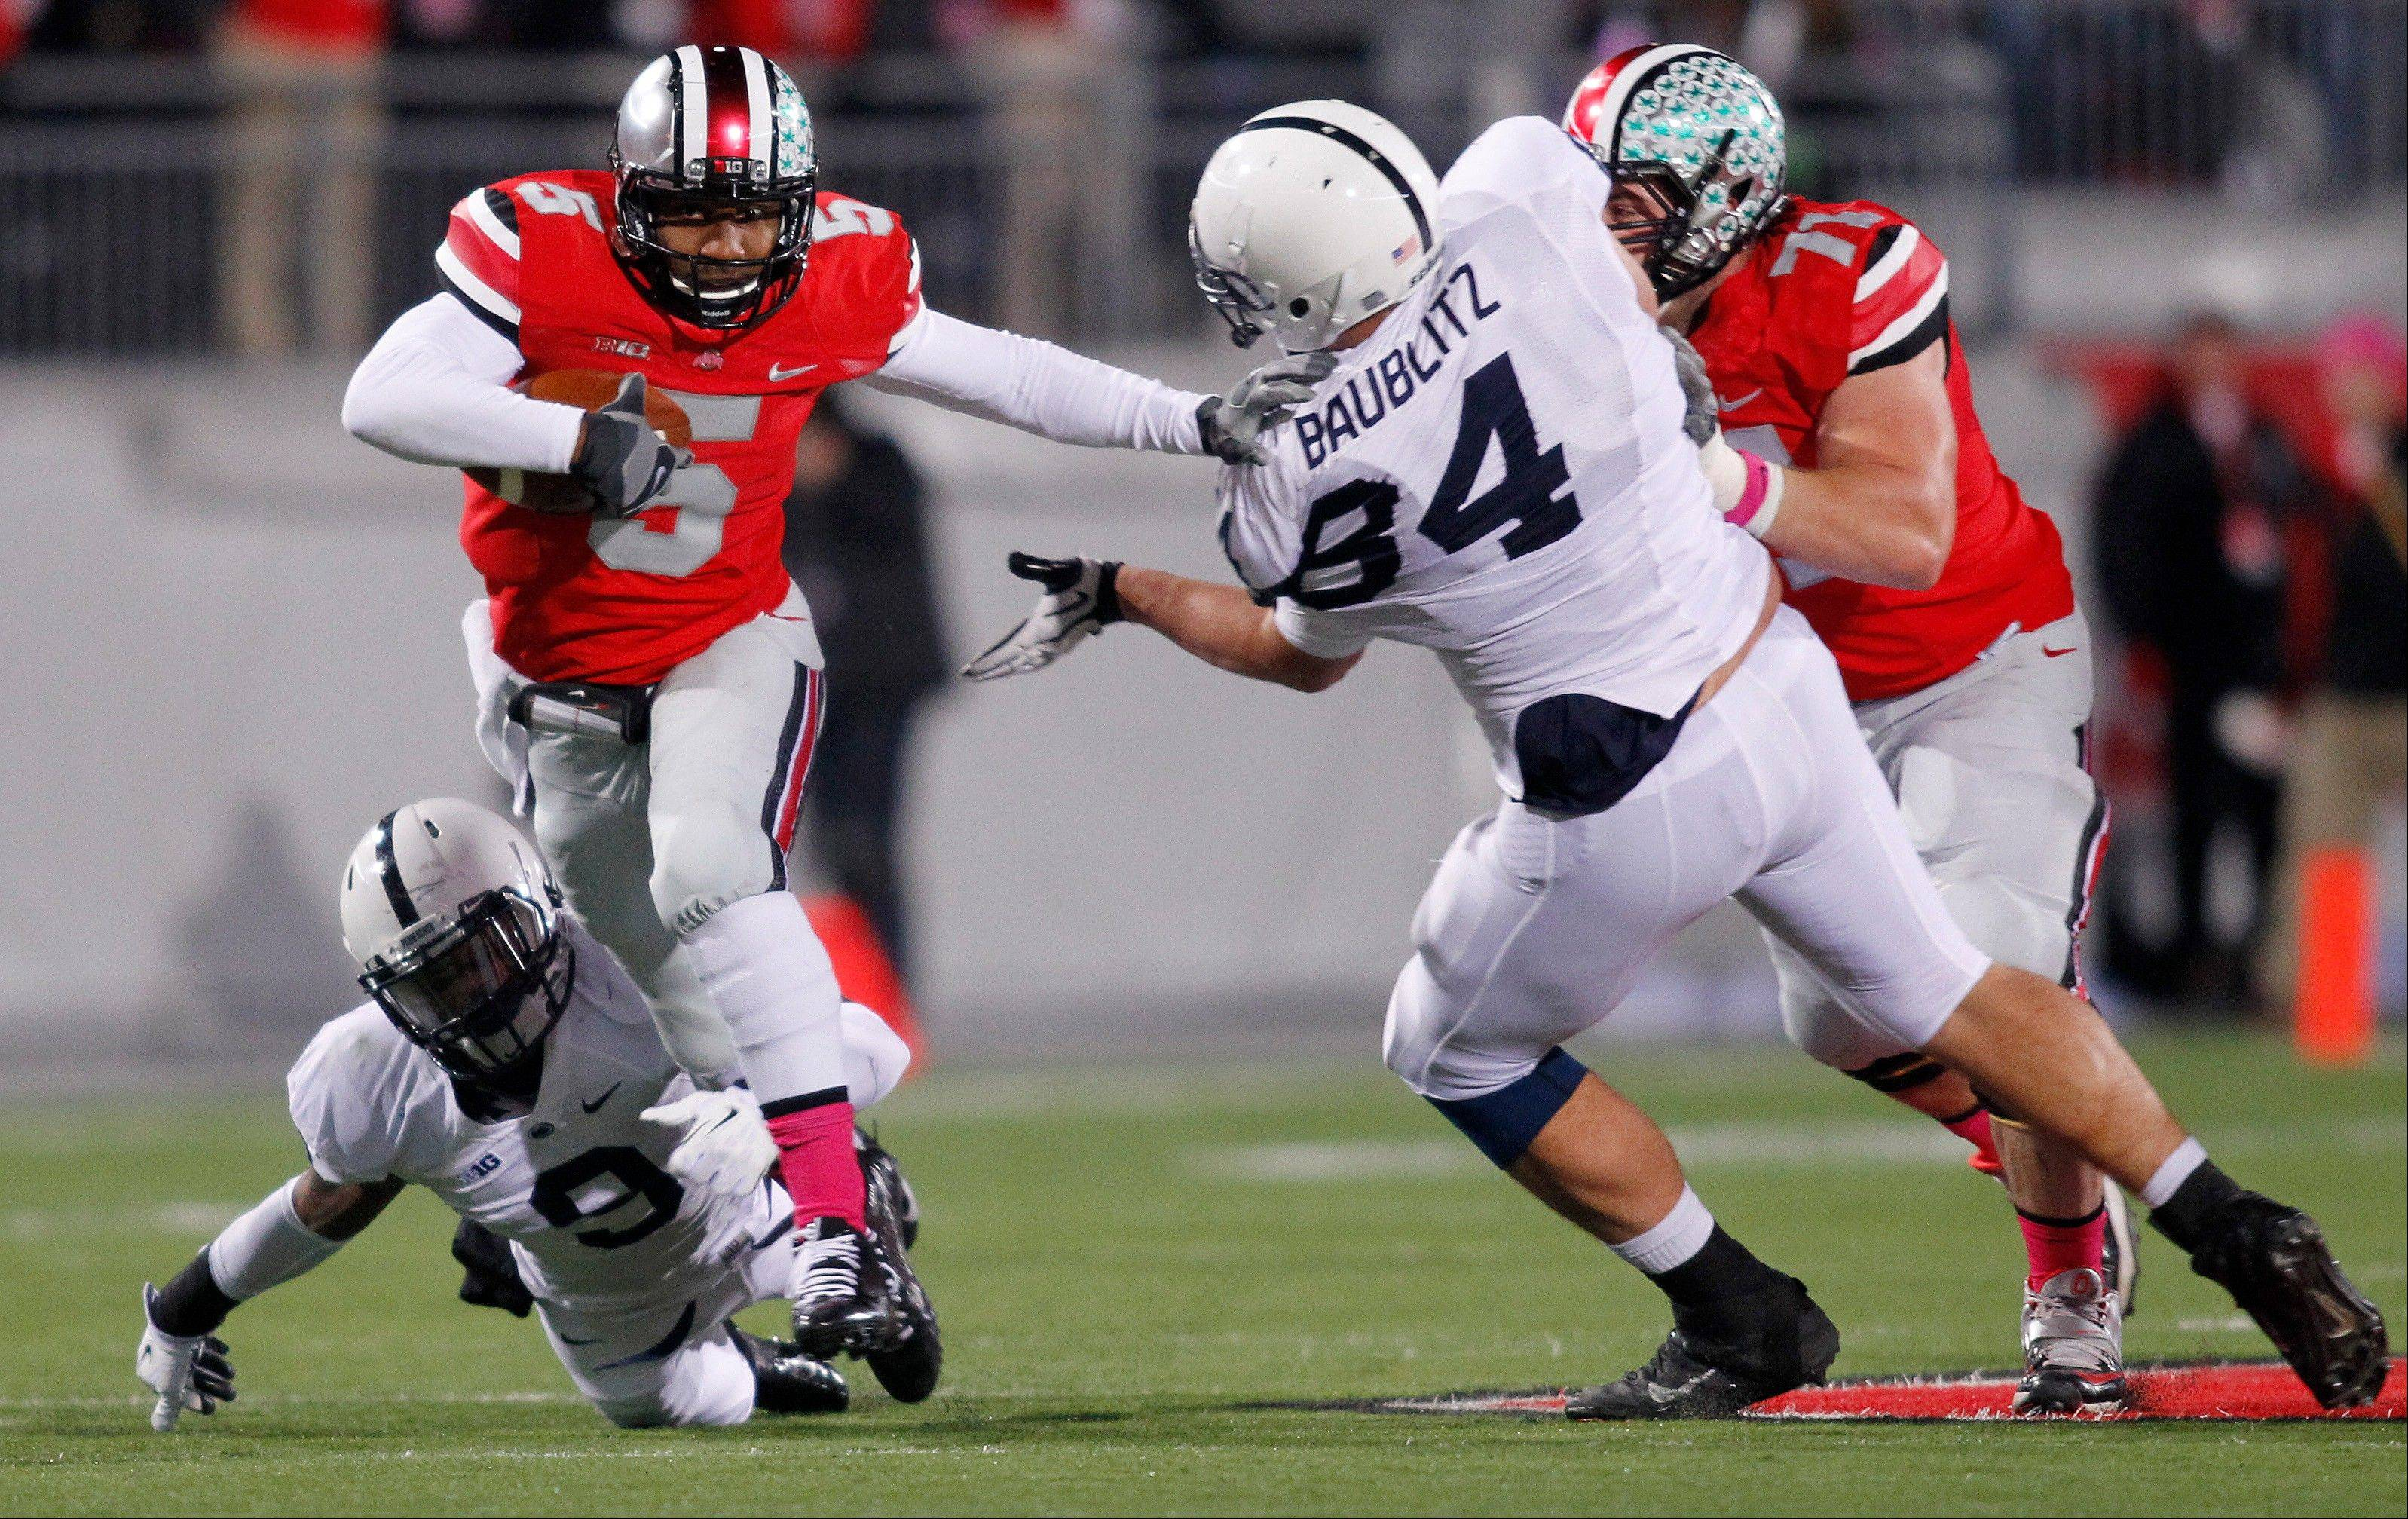 Ohio State quarterback Braxton Miller, top left, escapes the grasp of Penn State cornerback Jordan Lucas, bottom left, as Ohio State offensive lineman Corey Linsley, right, blocks Penn State defensive tackle Kyle Baublitz during the first quarter.